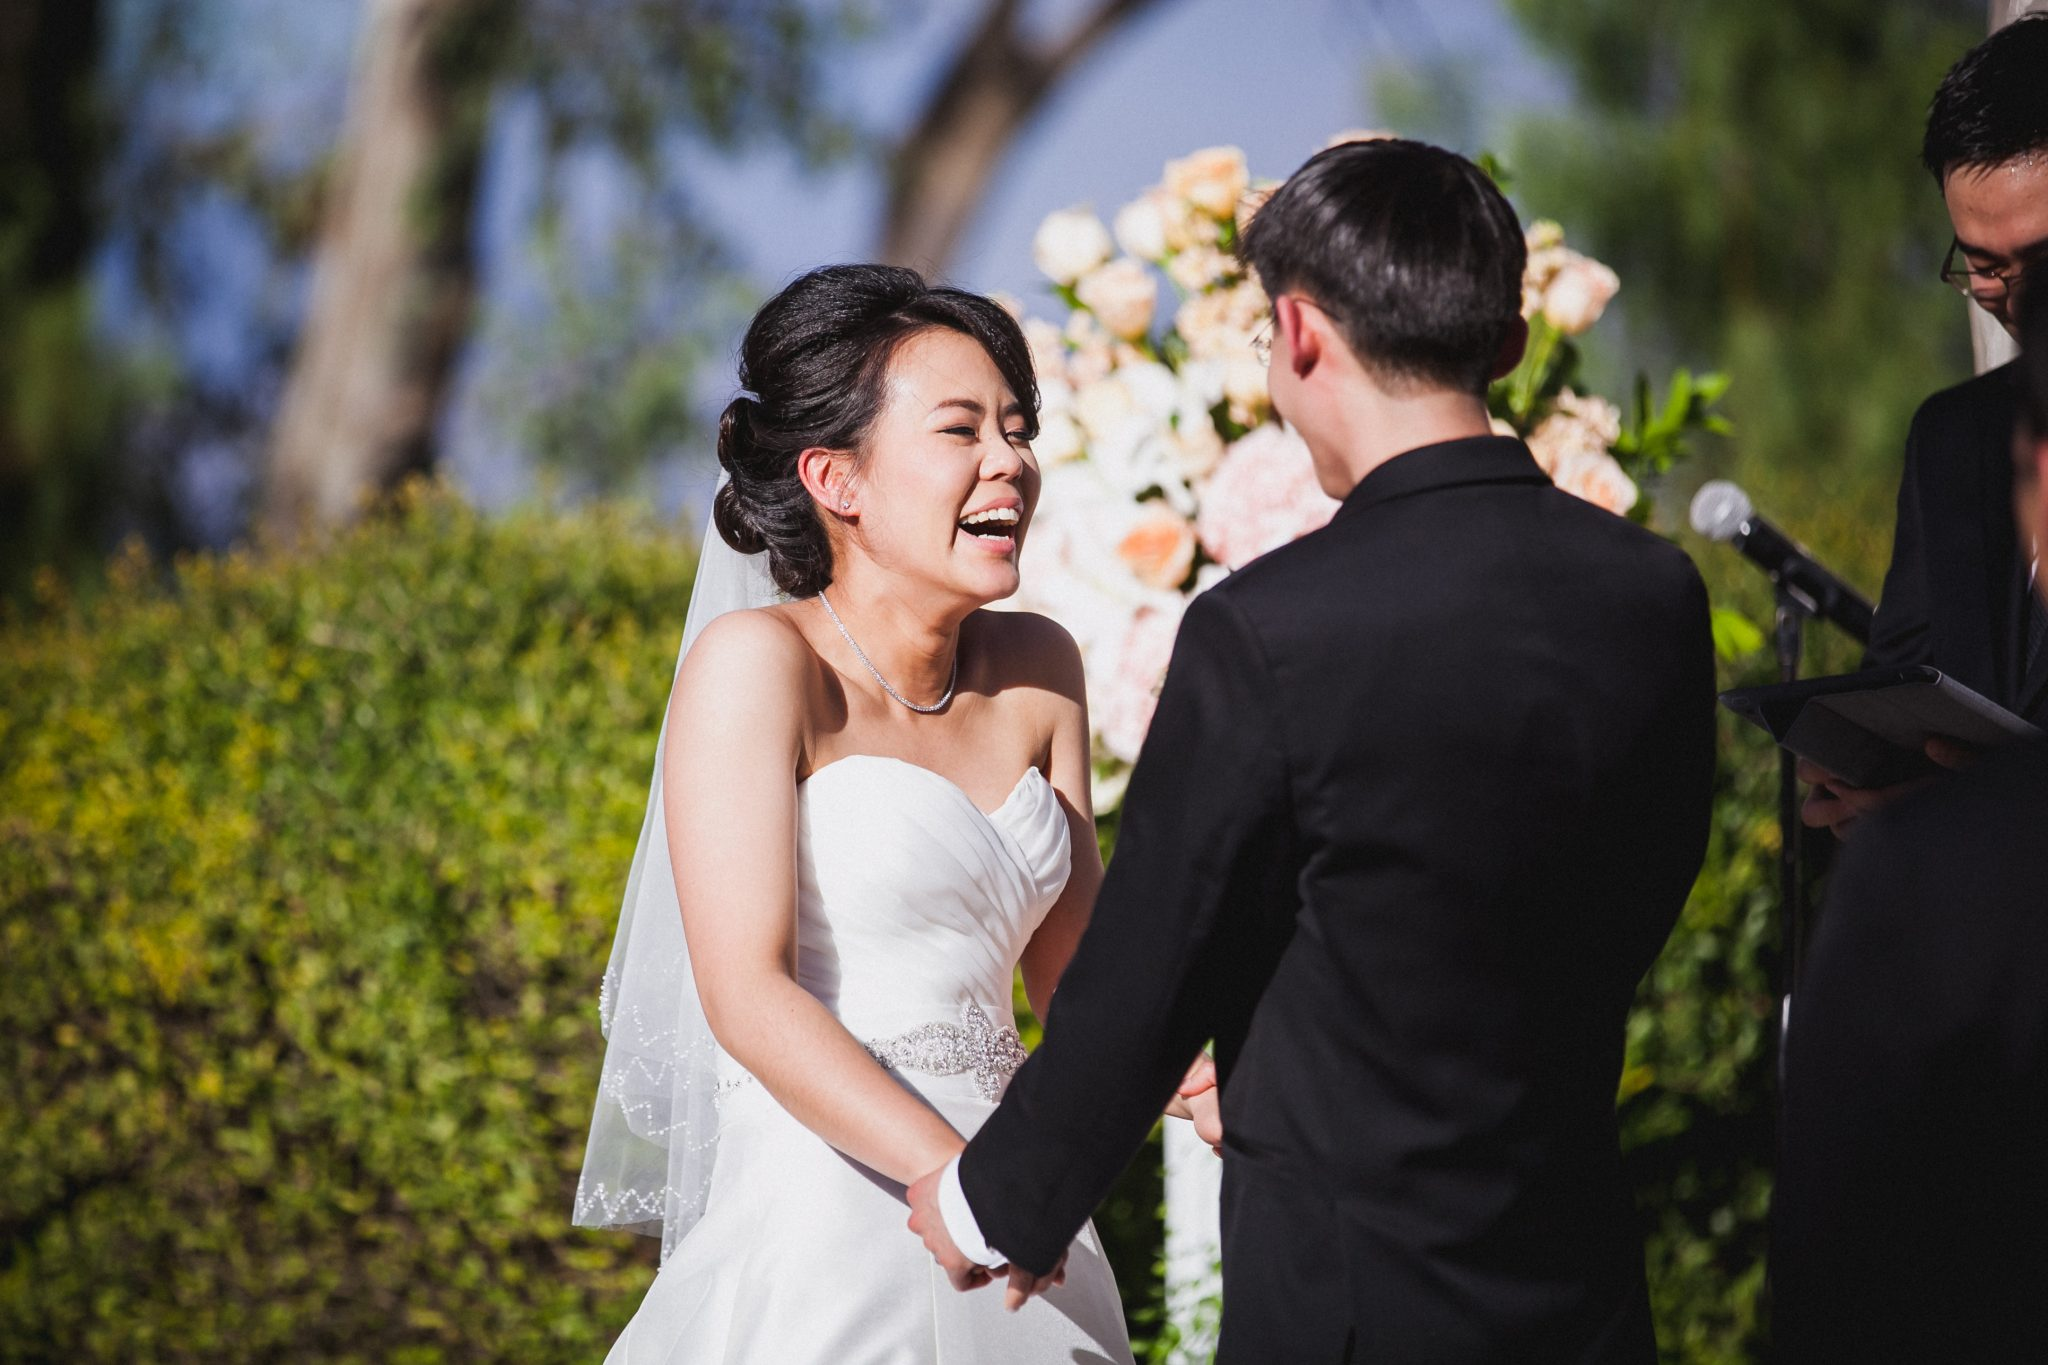 Bride laughs while holding the groom's hands in the ceremony